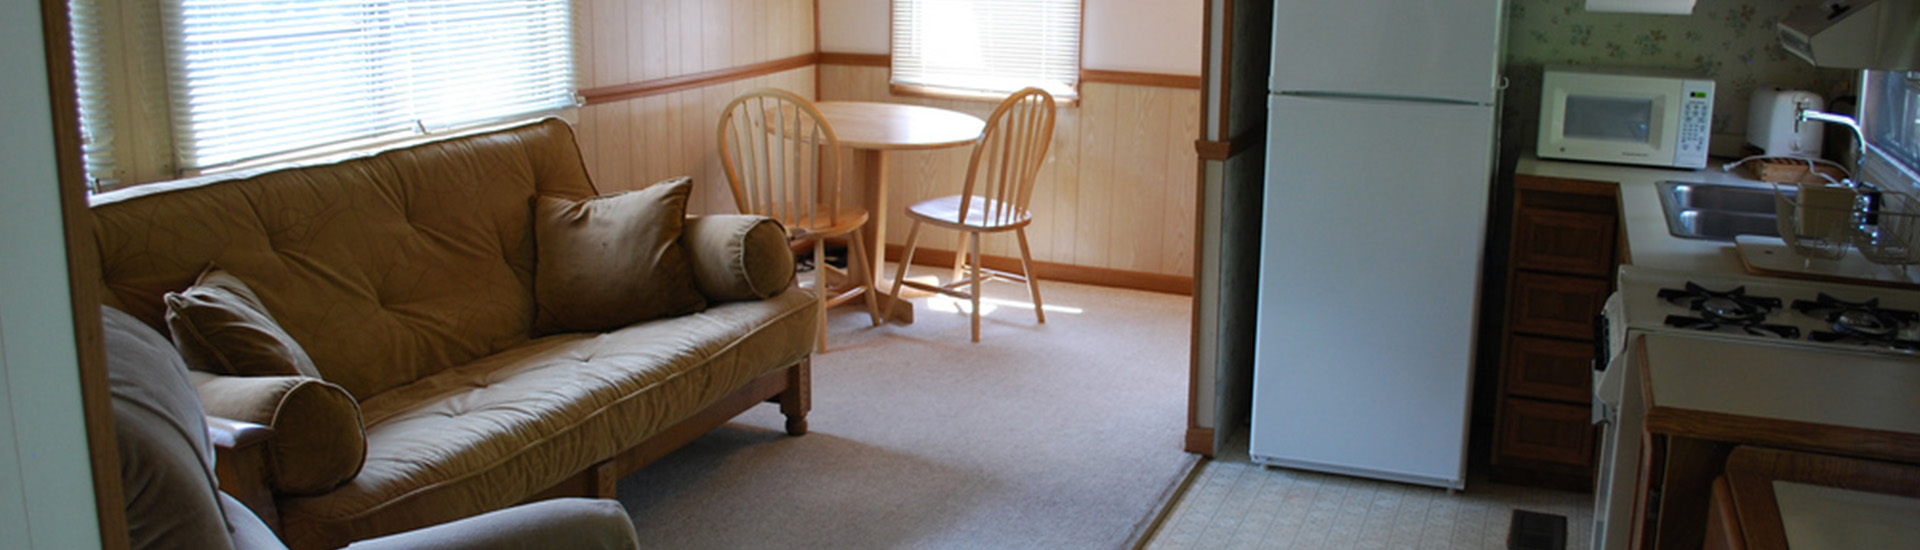 Inside of a cottage, with a sofa on the left, a table and chairs nearby, and the kitchen to the right.